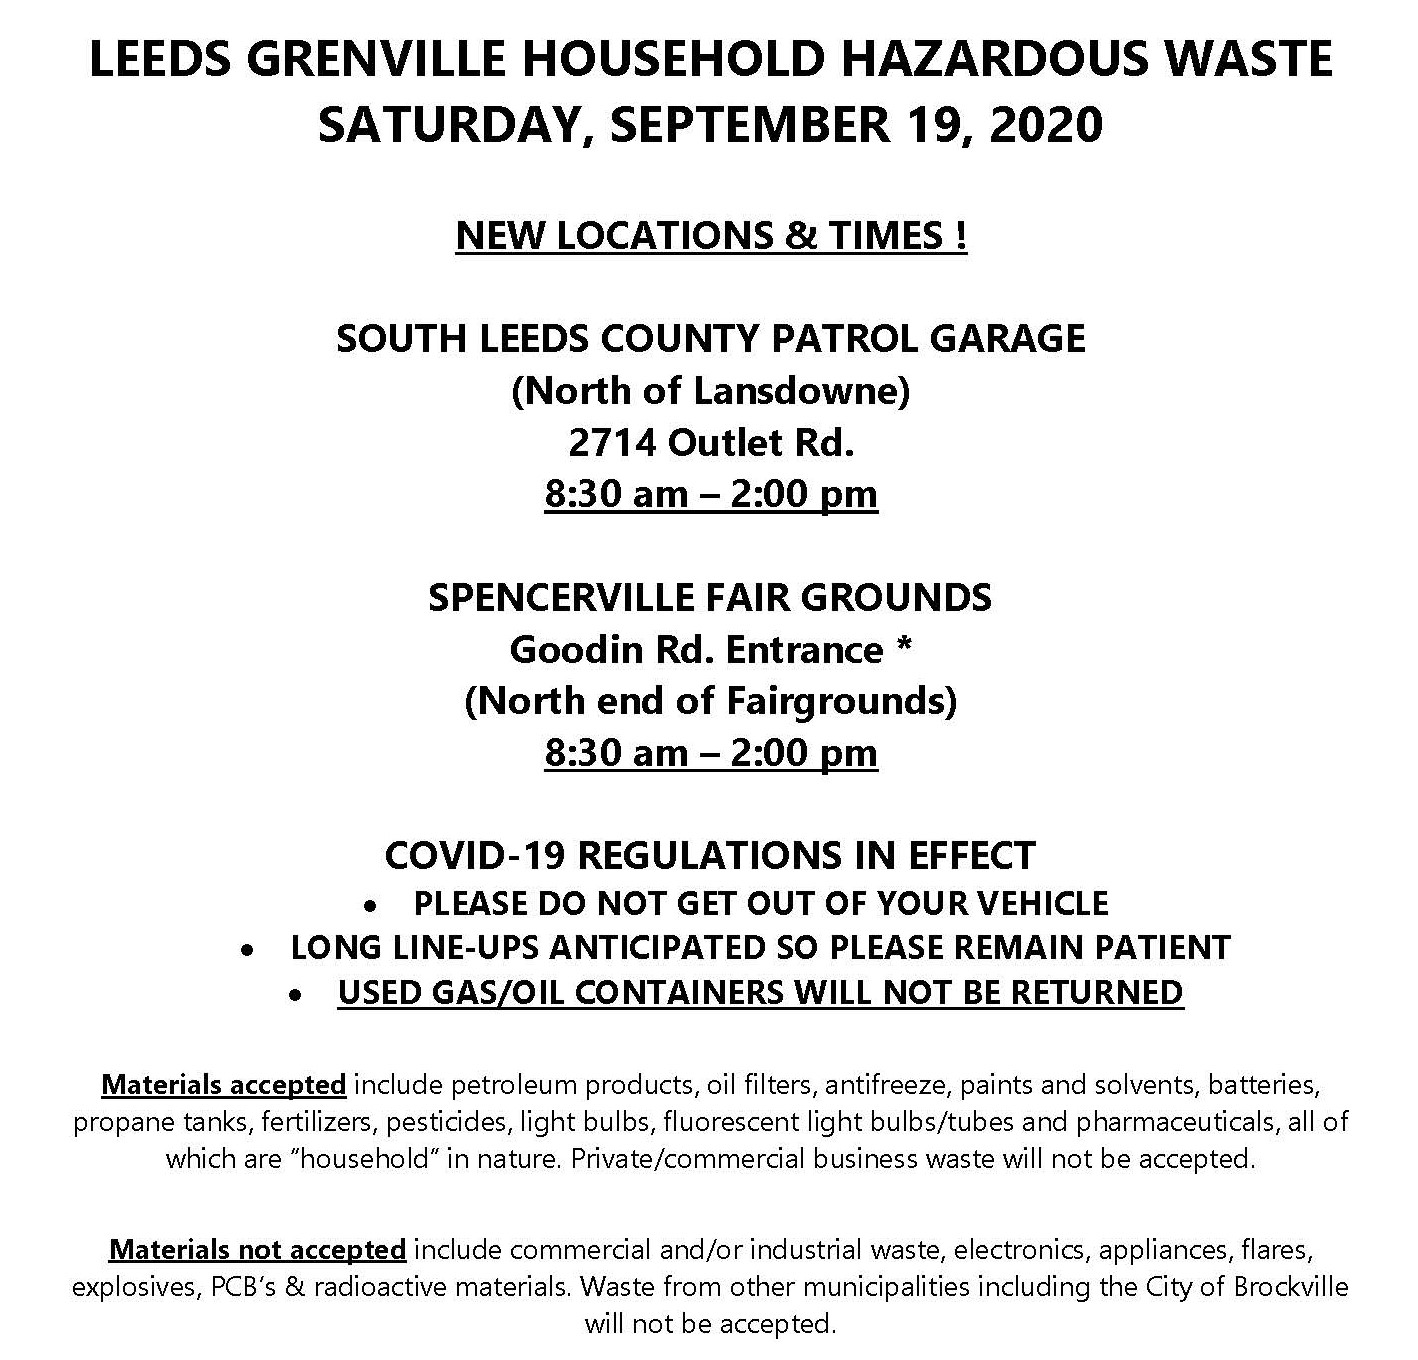 UCLG Household Hazardous Waste Day - Spencerville* @ Spencerville Fairgrounds, Goodin Road Entrance, North End of Fairgrounds | Minneapolis | Minnesota | United States